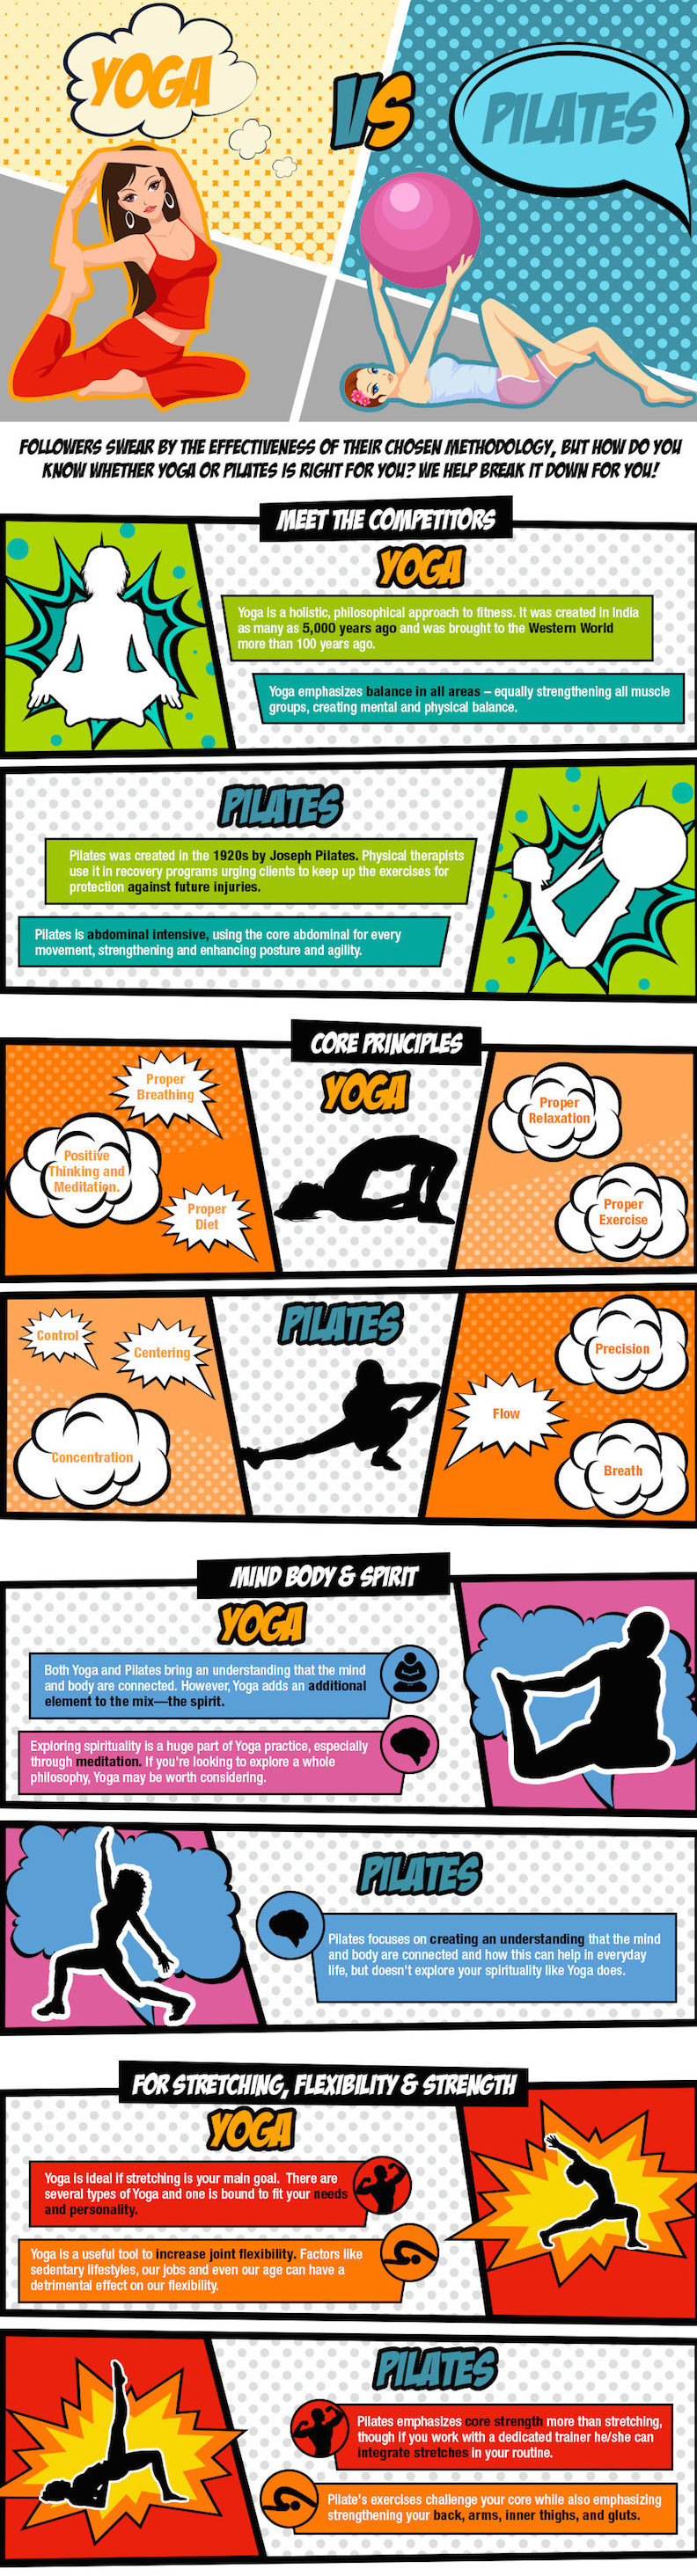 Choosing Between Yoga and Pilates Infographic